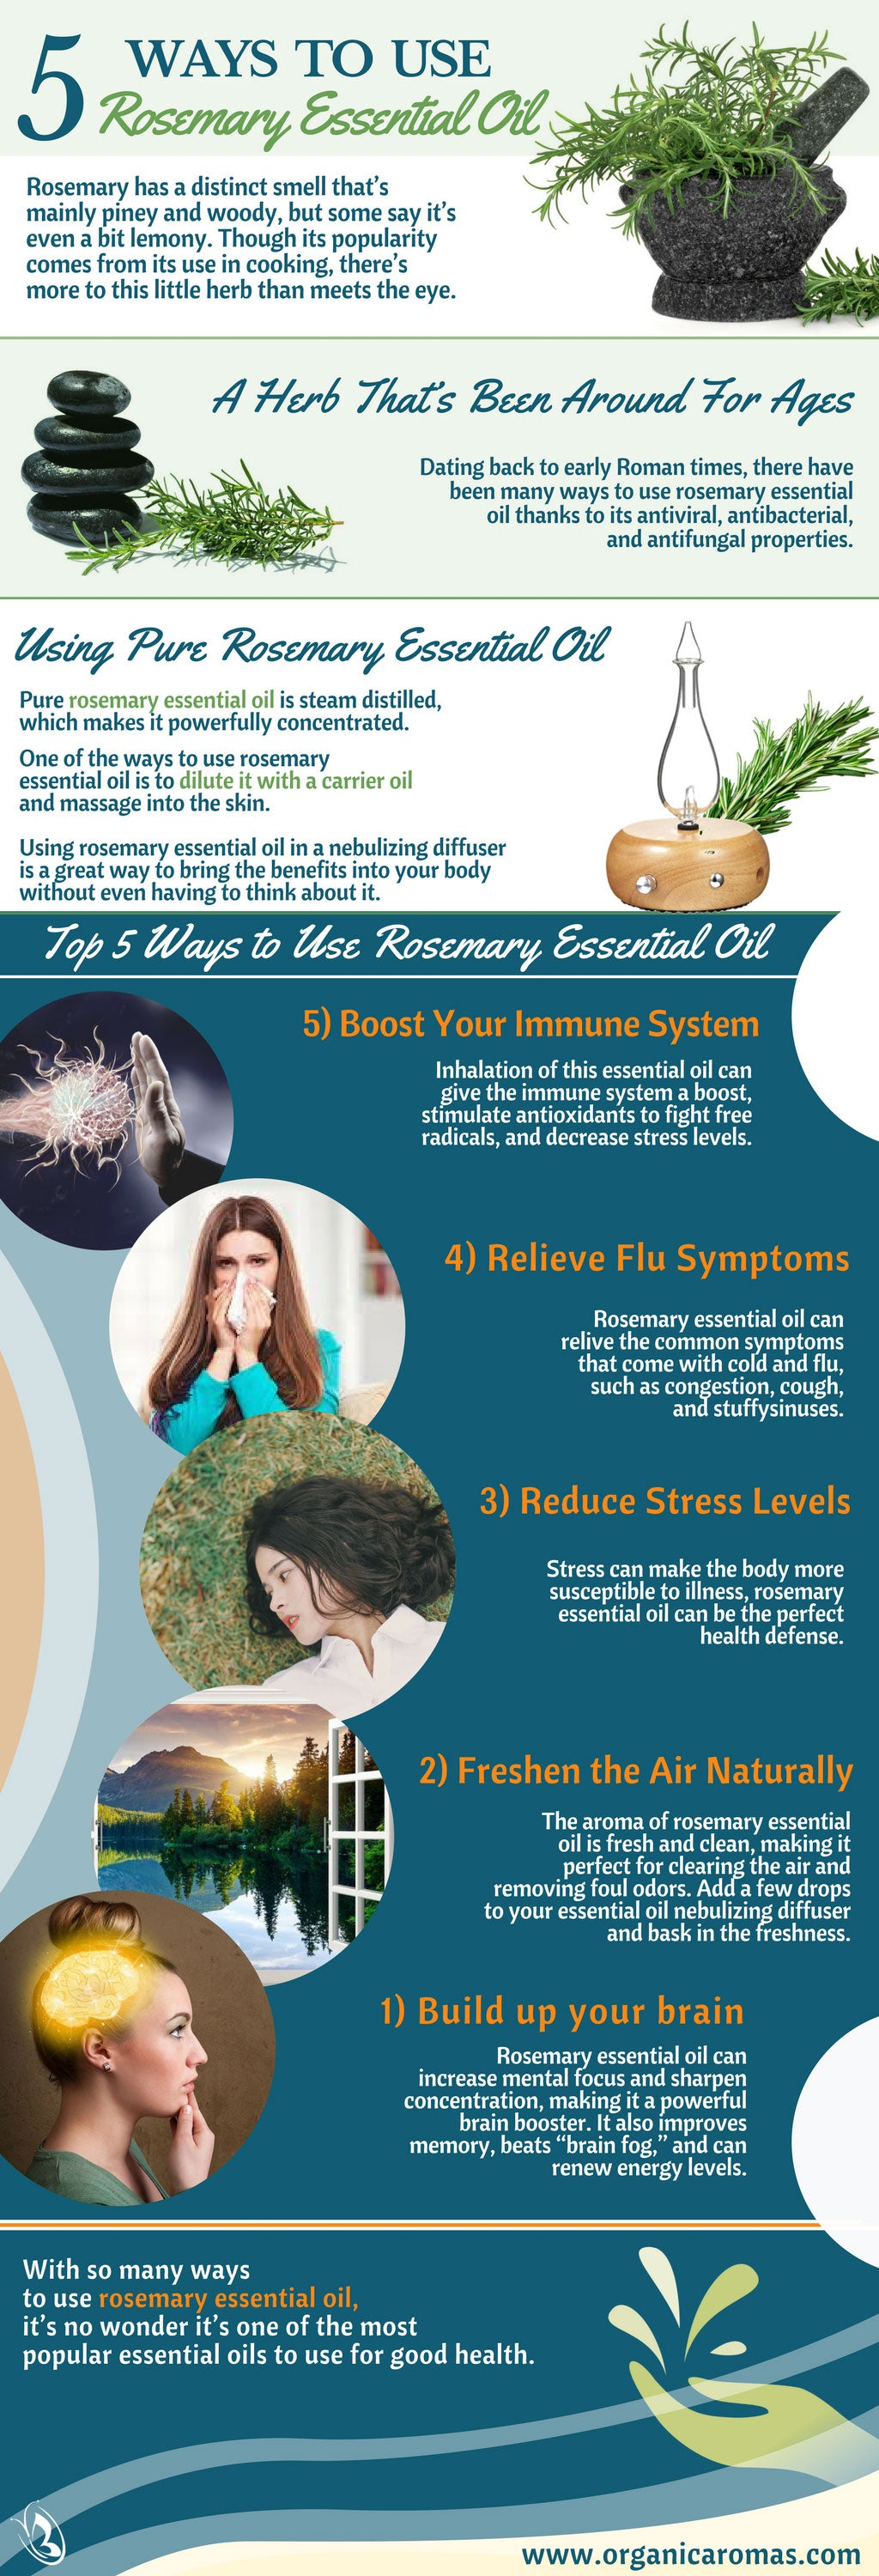 Top 5 Ways to Use Rosemary Essential Oil - Organic Aromas